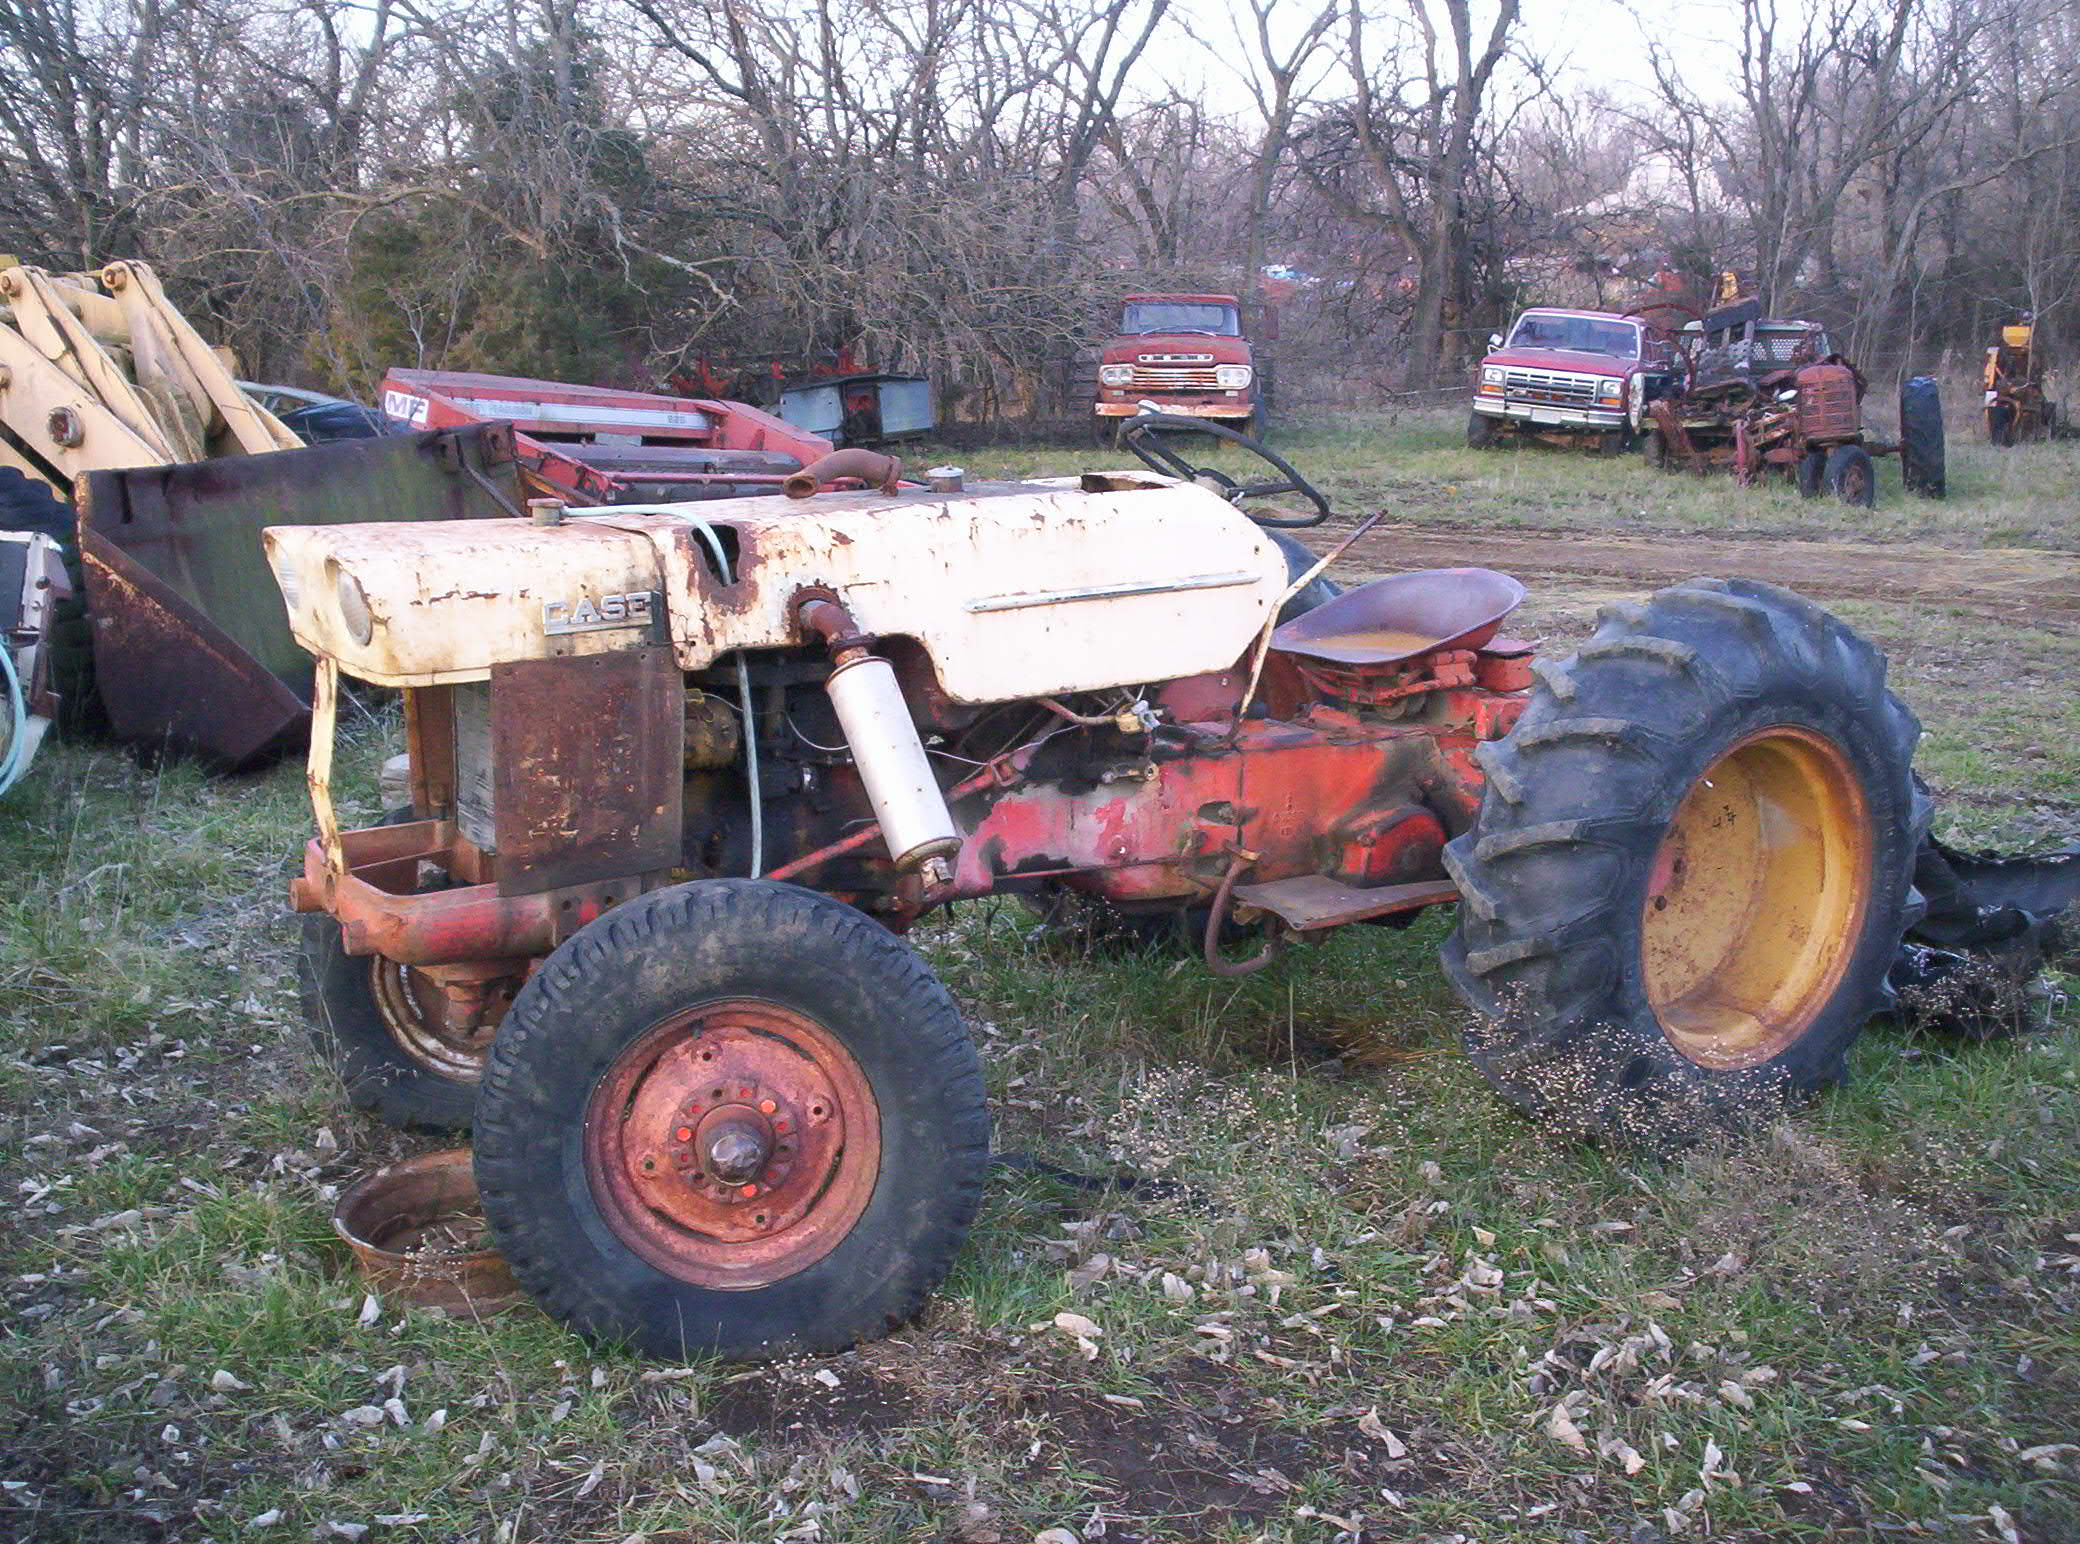 Used Tractor Parts Salvage Yards : Tractor junkyard bing images